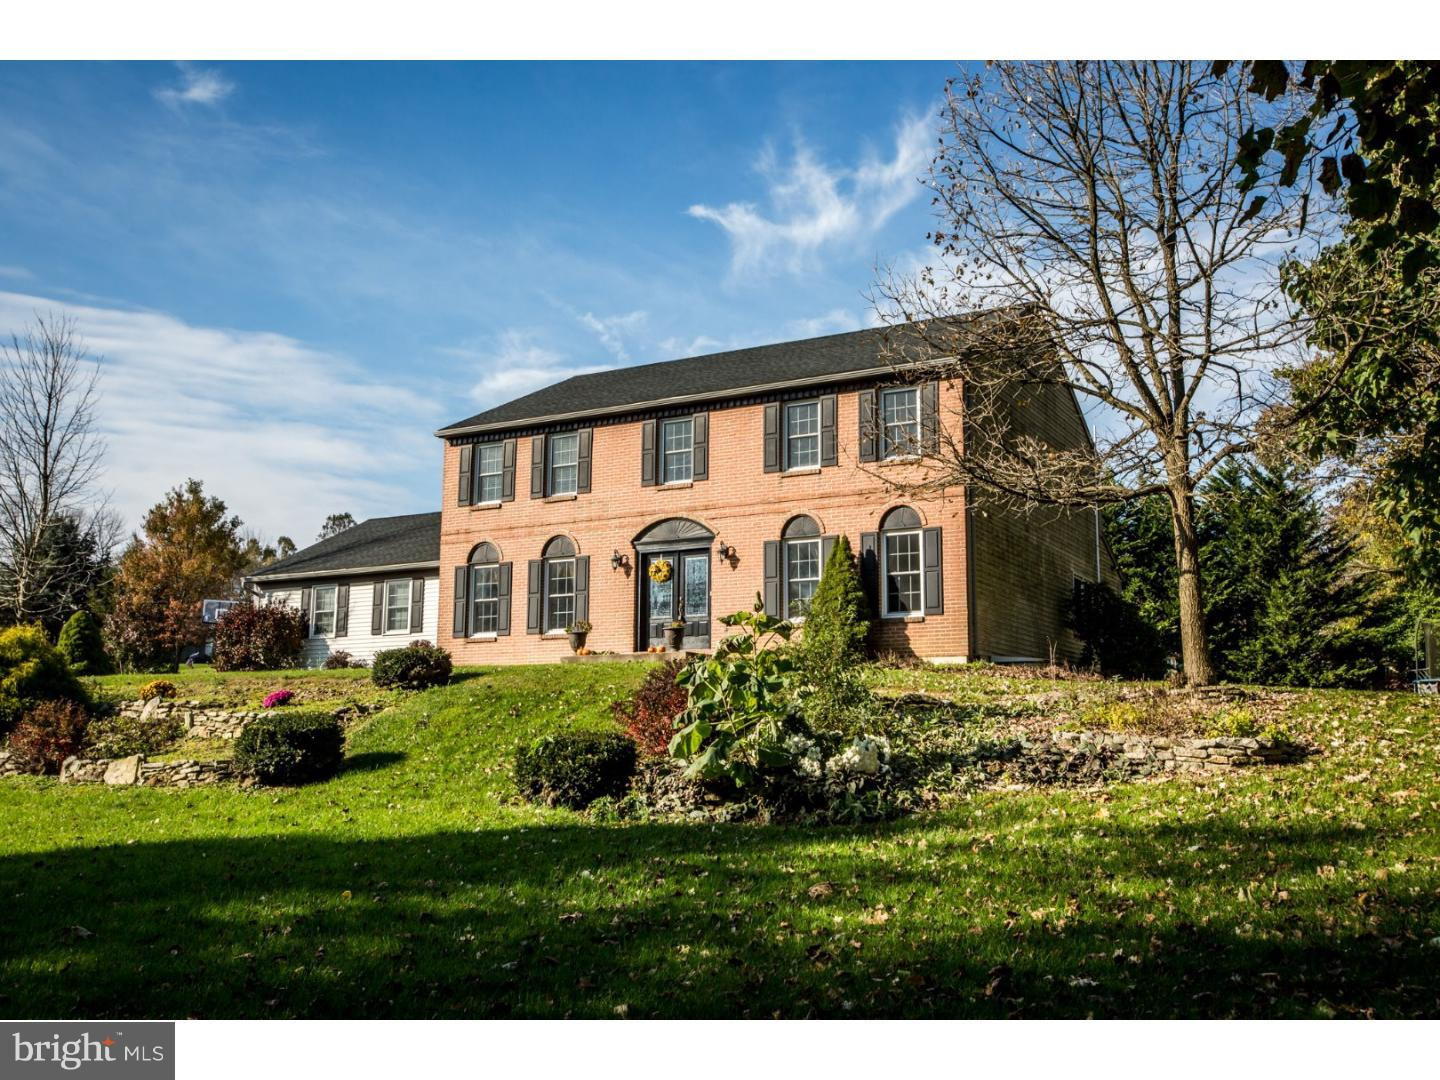 28 FOREST VIEW DRIVE, WERNERSVILLE, PA 19565